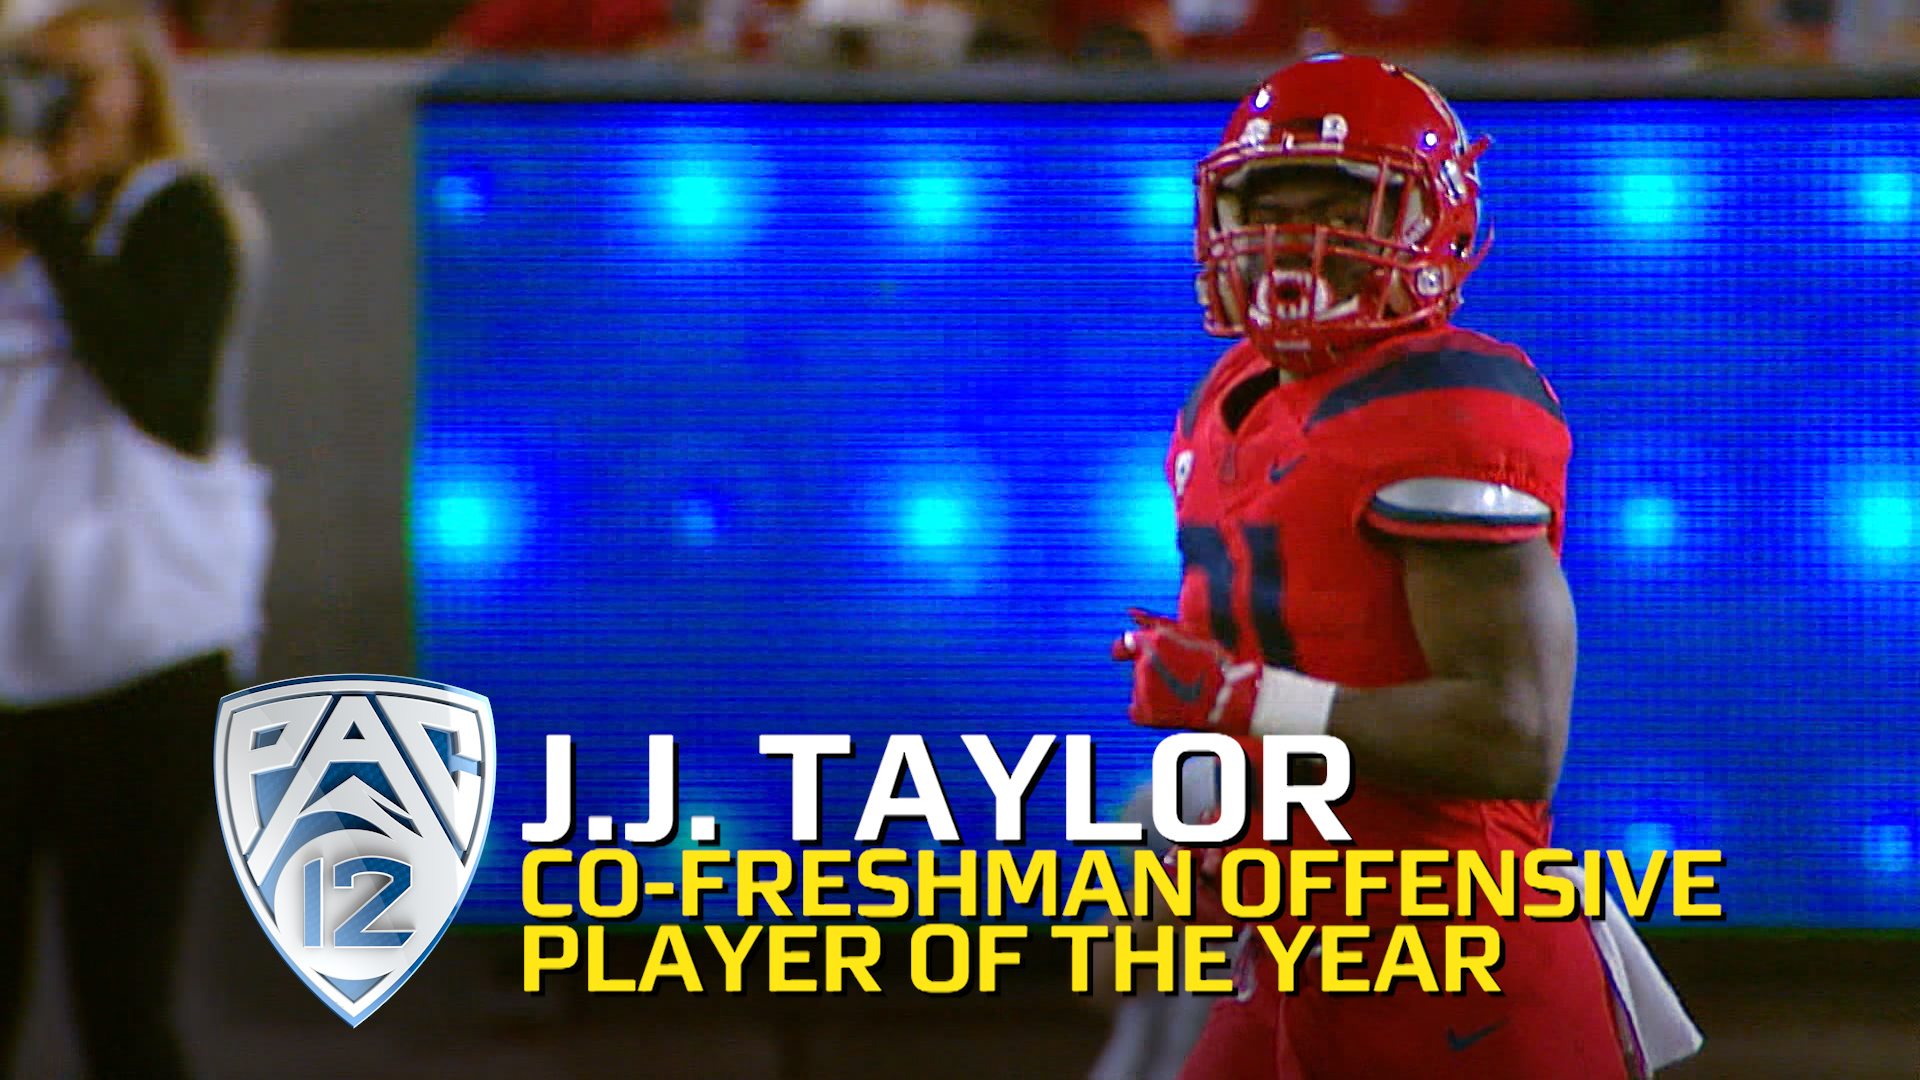 Arizona s J J Taylor claims Pac 12 Co Freshman fensive Player of the Year honors